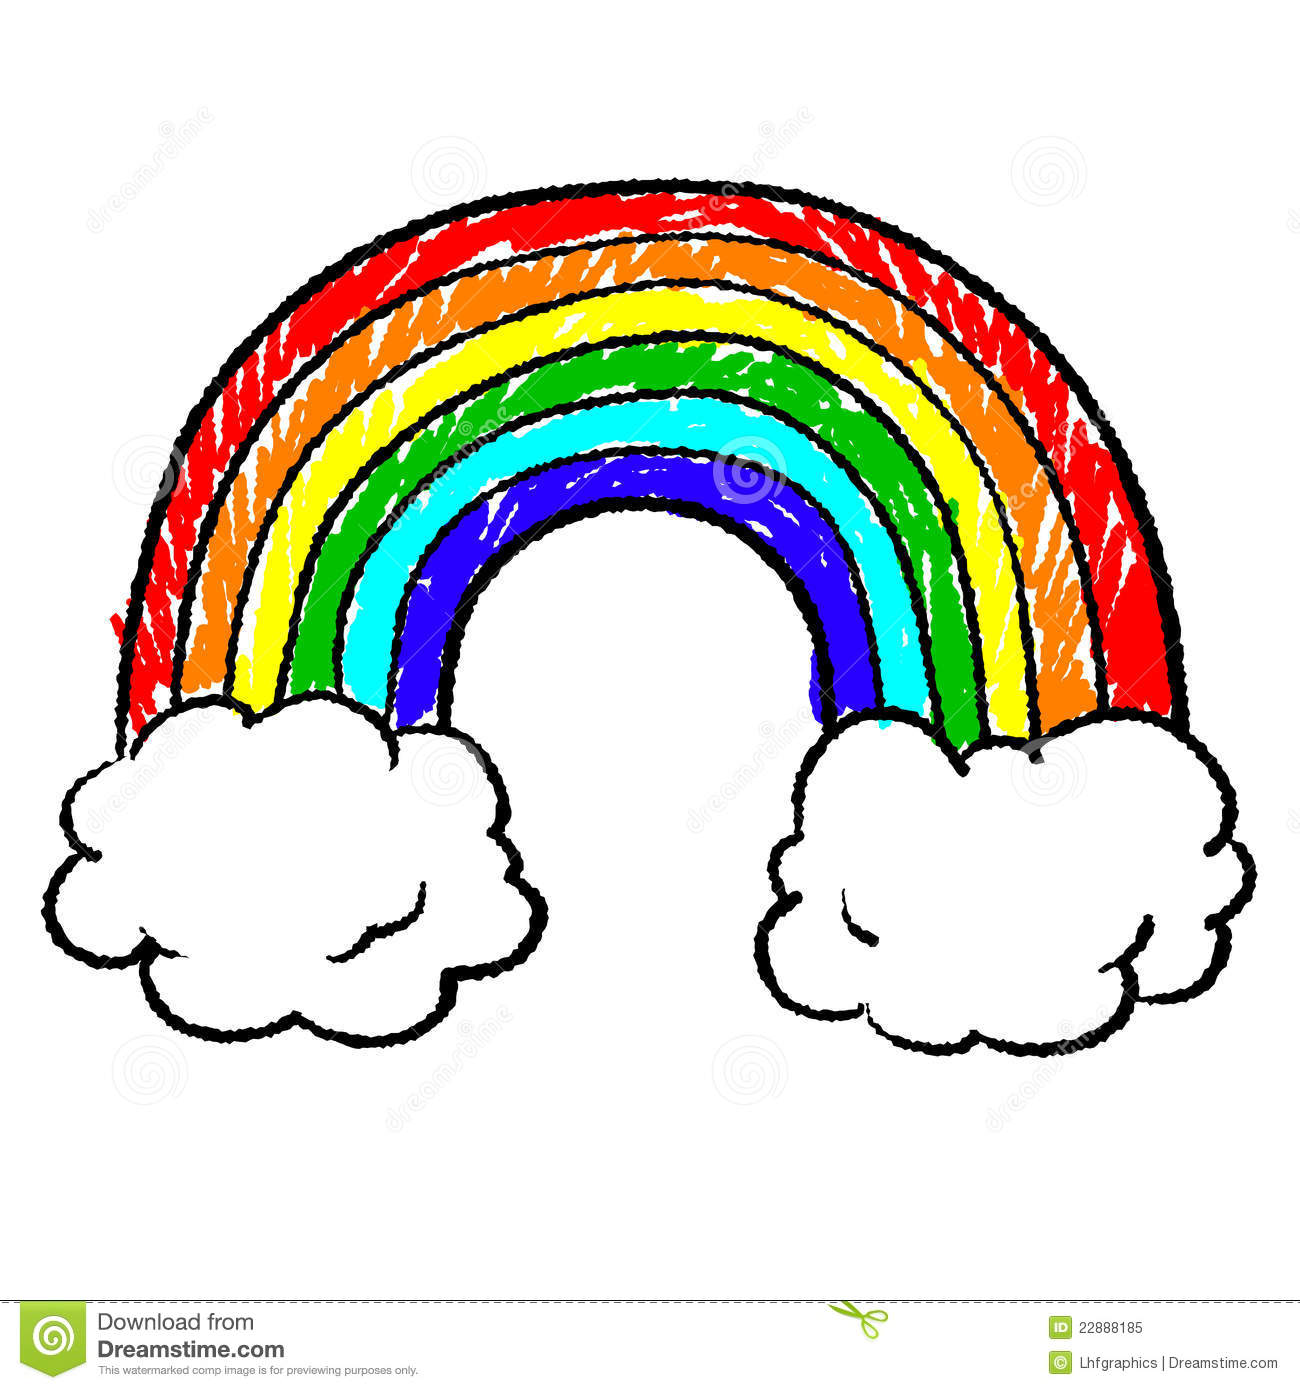 Rainbow Sketch Royalty Free Stock Photo Image 22888185